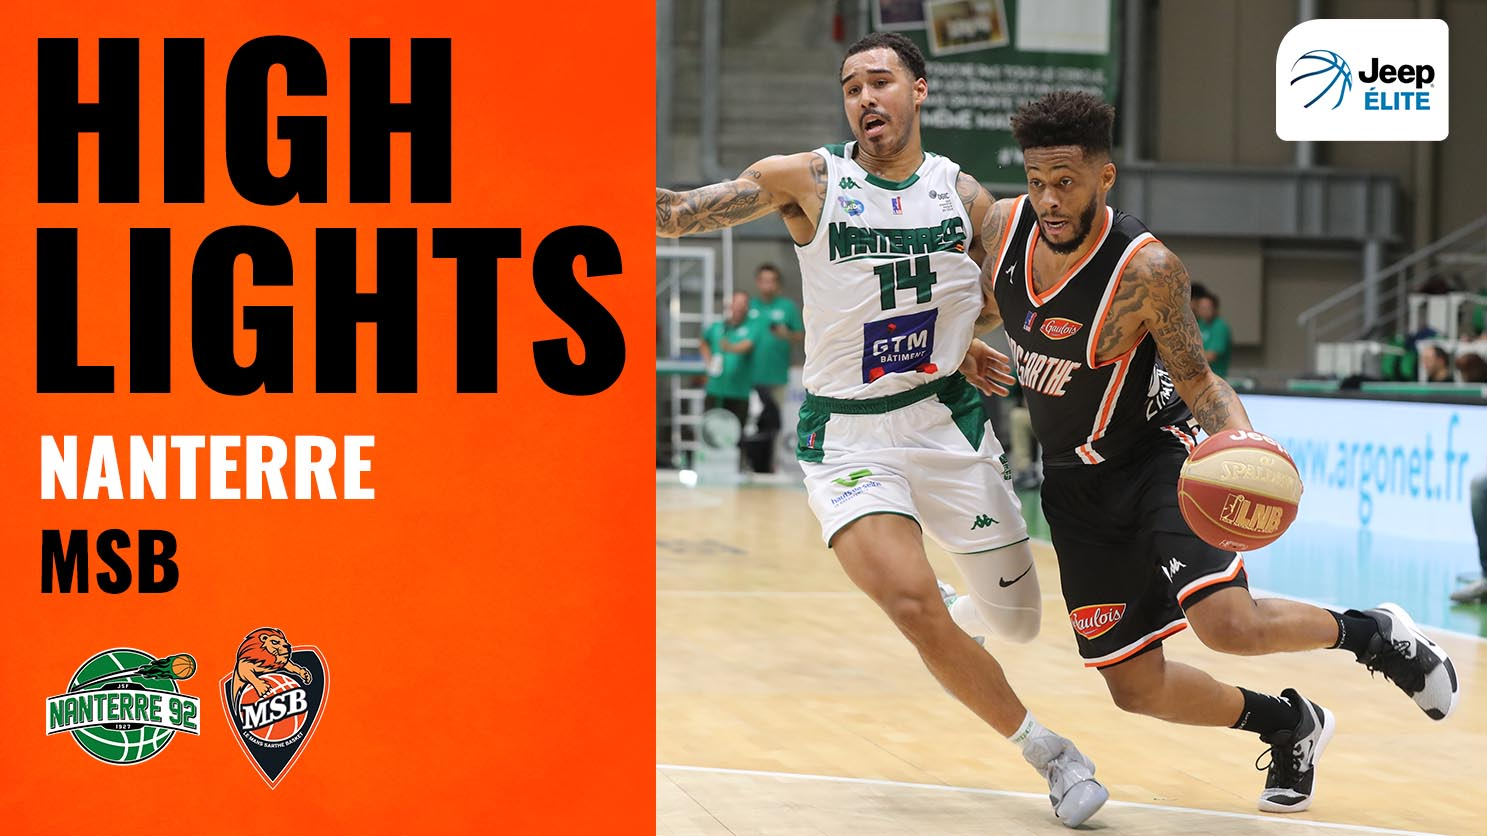 Nanterre - MSB | Highlights